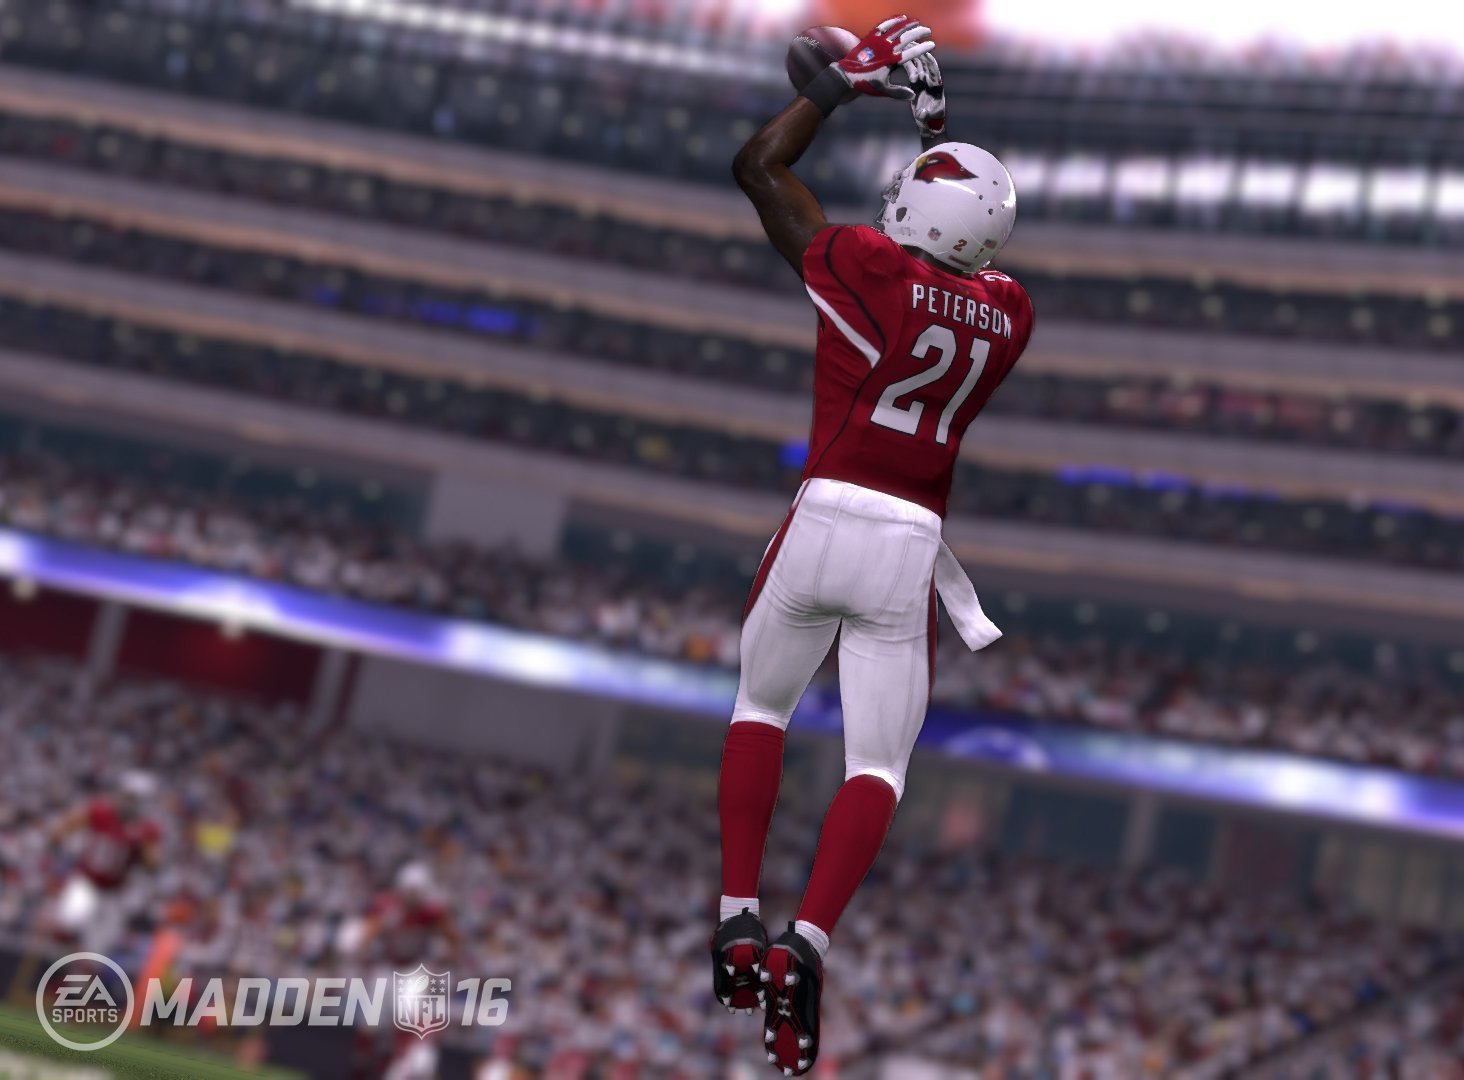 Madden NFL 16 screenshot 3864